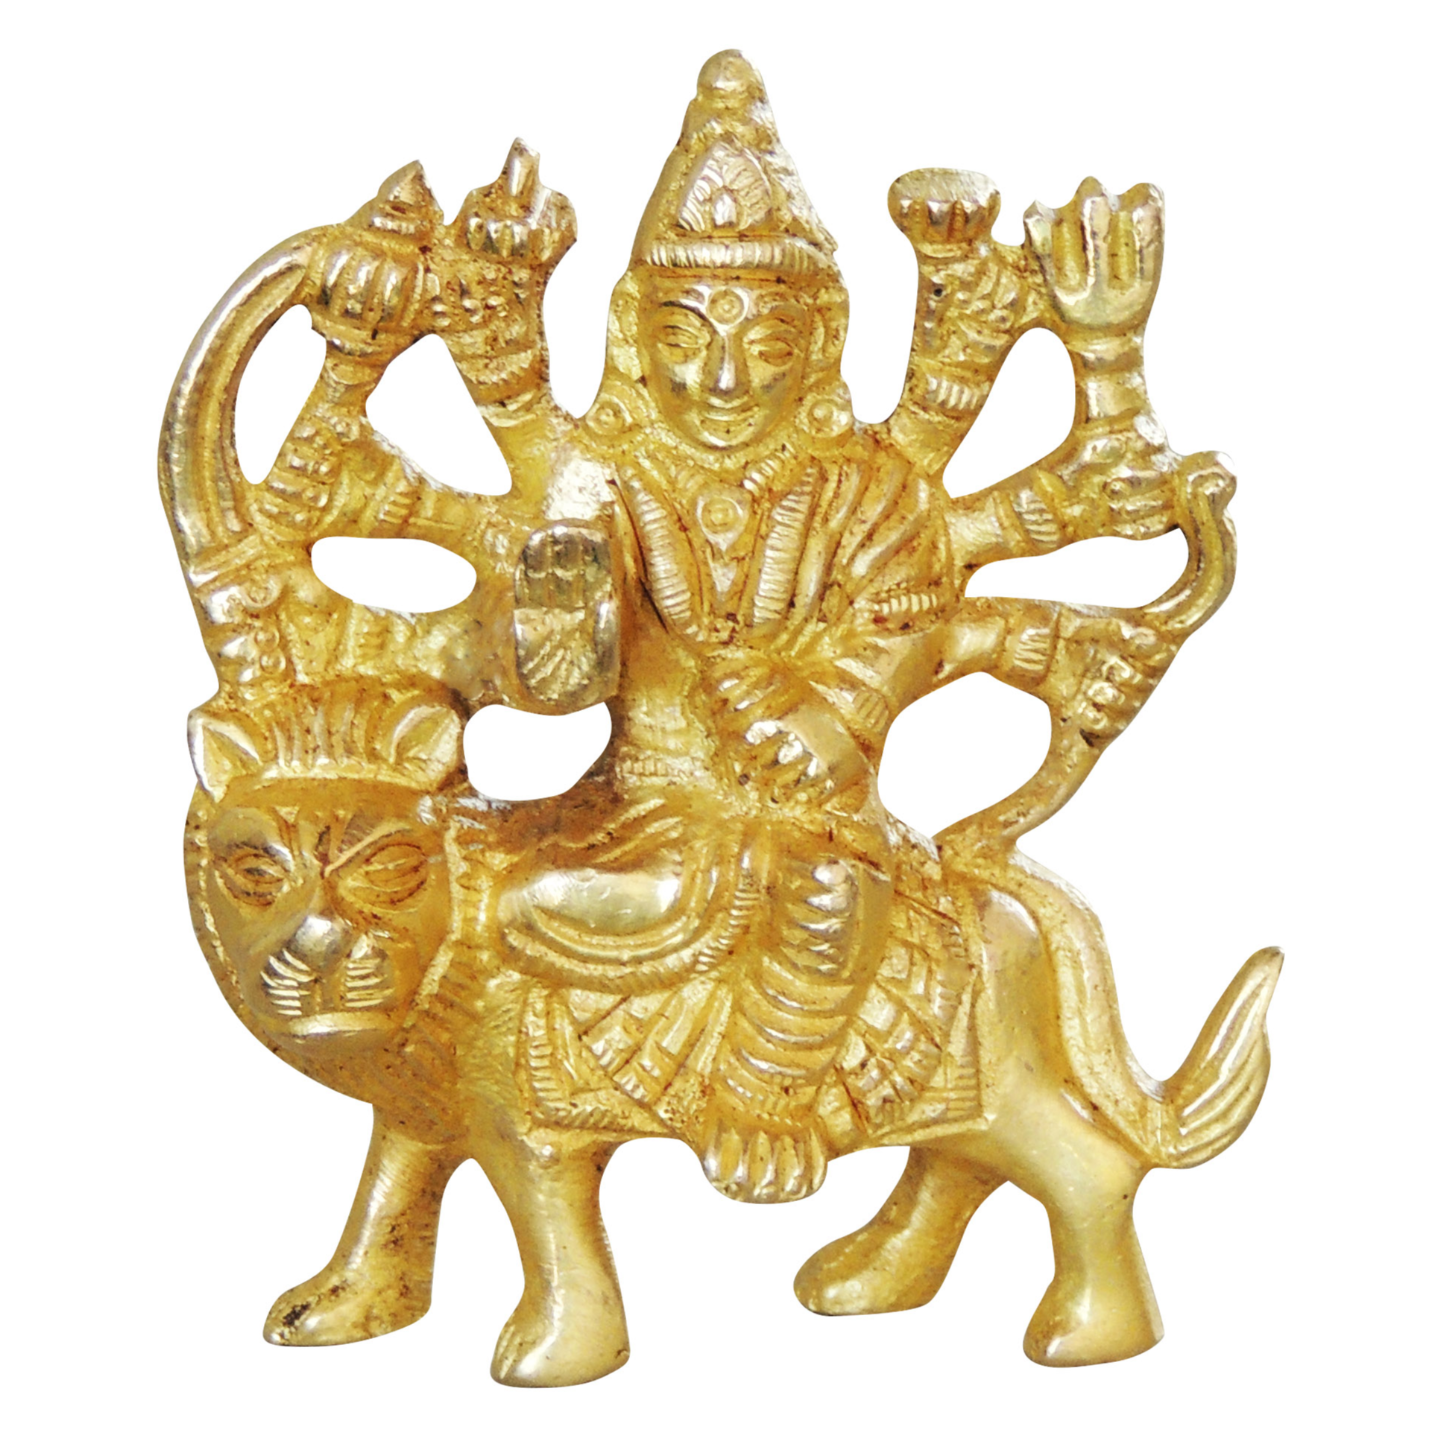 Brass Durgaji Small In Natural Brass Finish - 3 inch (BS1044 C)